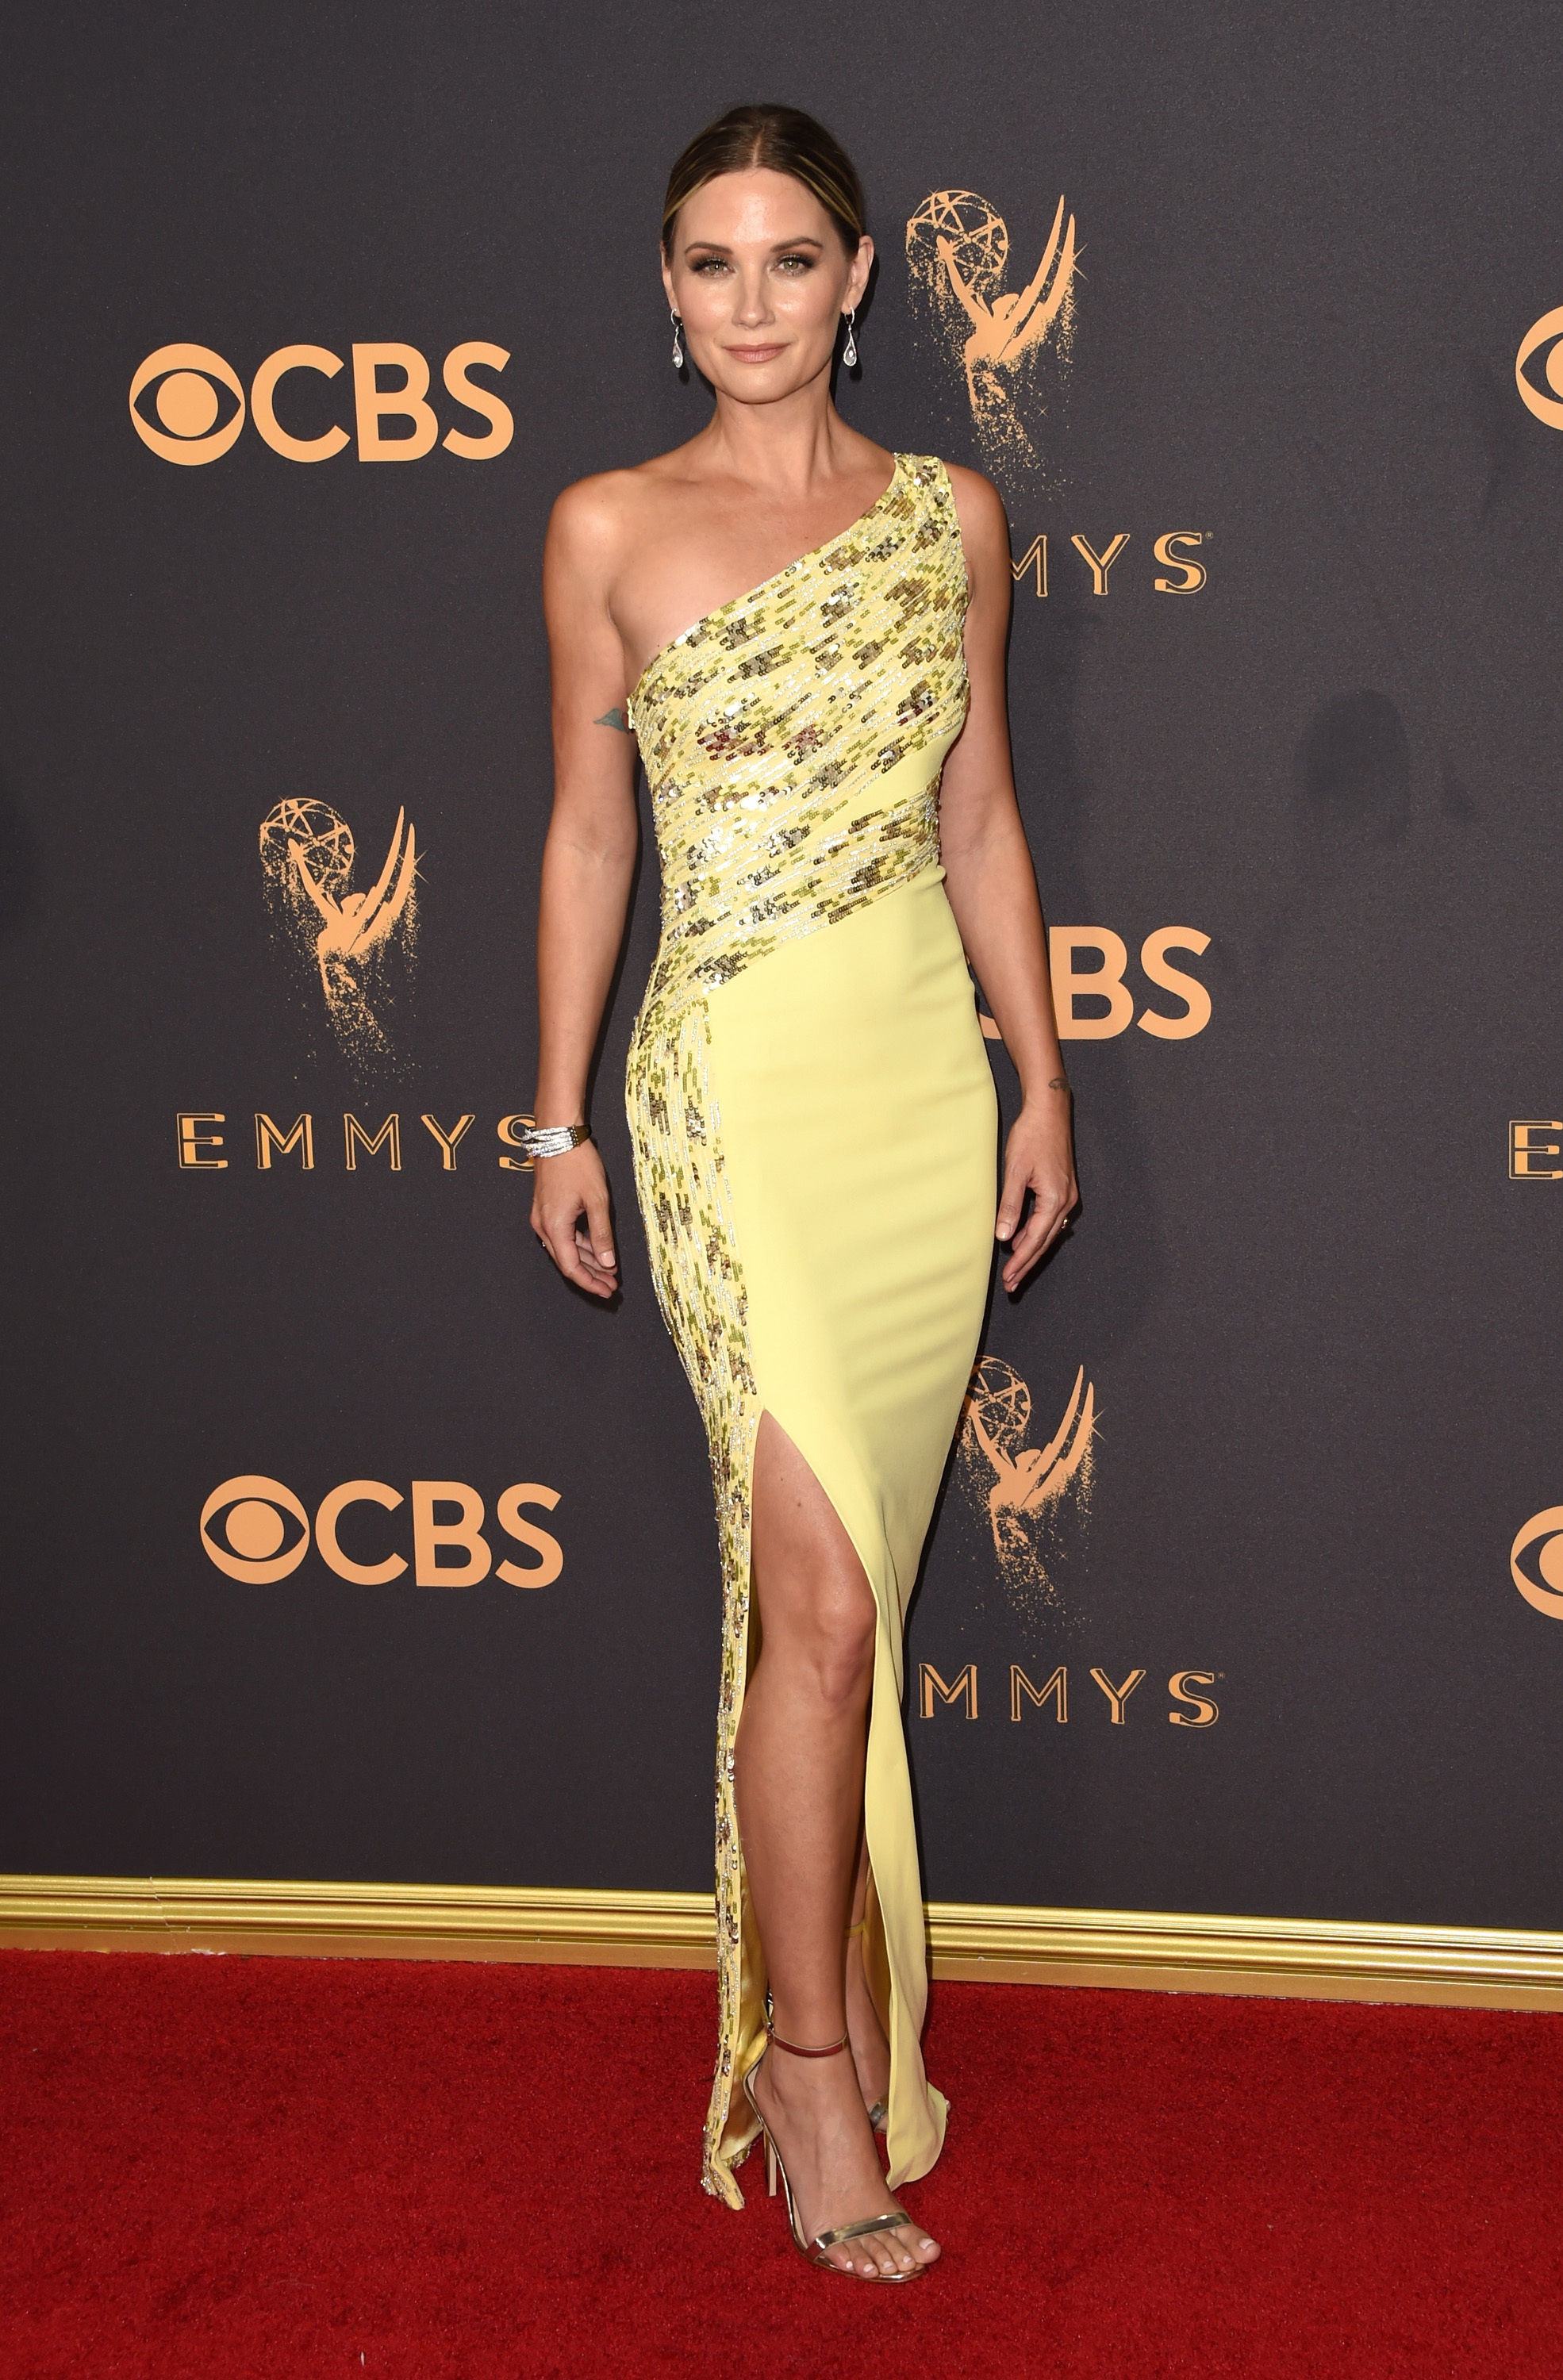 Jennifer Nettles attends the 69th Annual Primetime Emmy Awards at the Microsoft Theater in Los Angeles on Sept. 17, 2017.